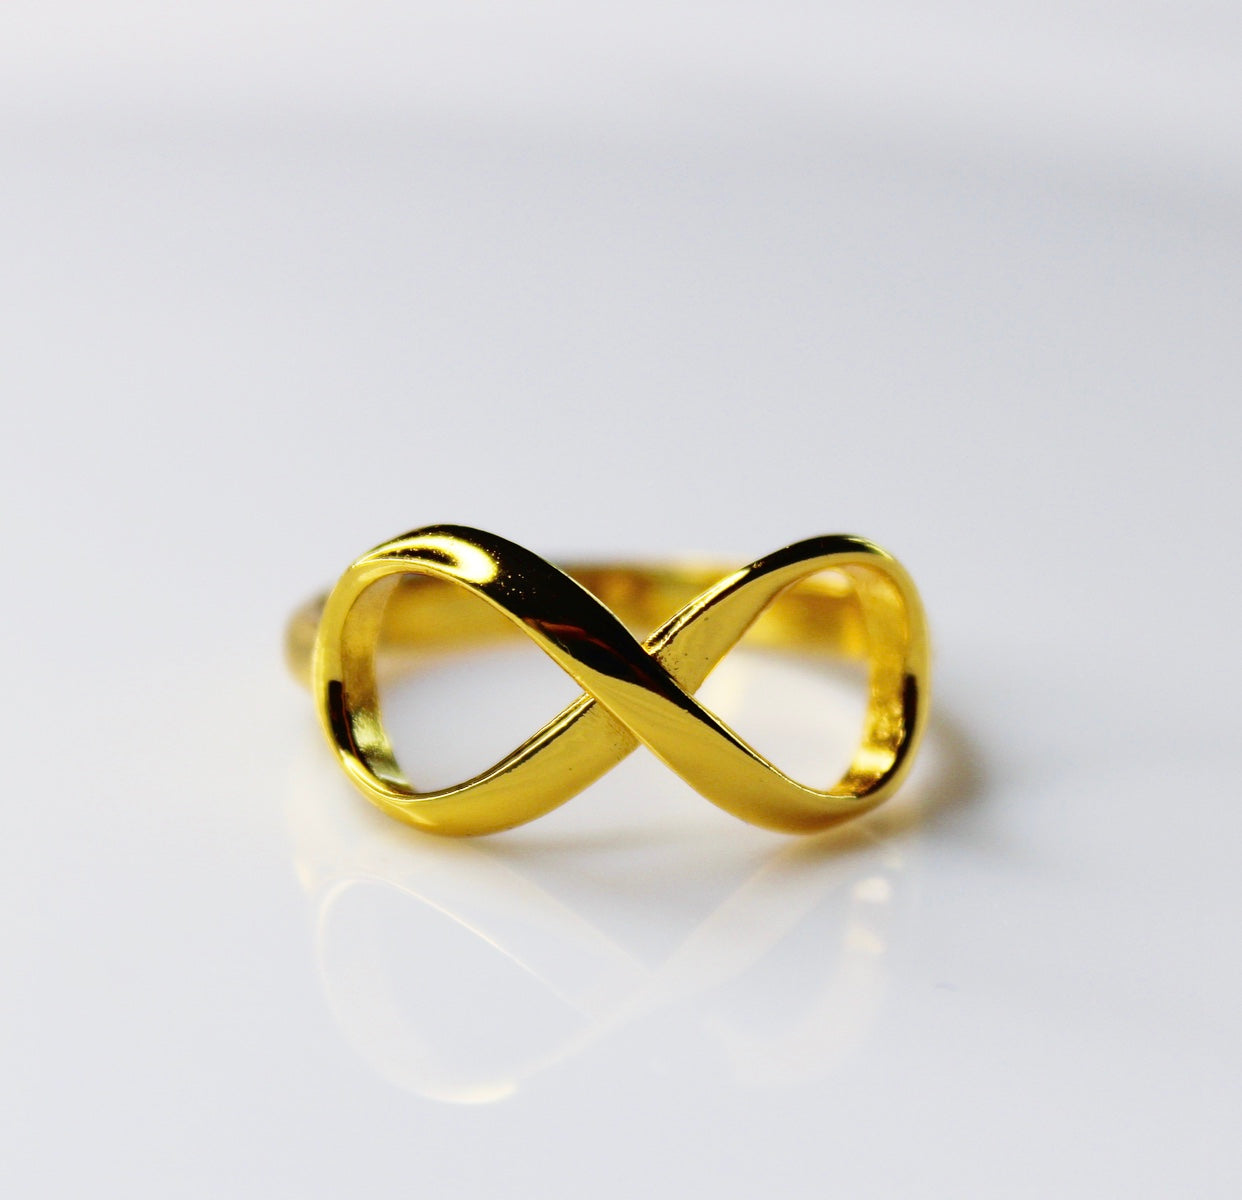 Infinity Gold Ring in sterling silver by KesleyBoutique.com, Girlwith3jobs.com, Holiday gifts, holiday gifts, jewelry gifts